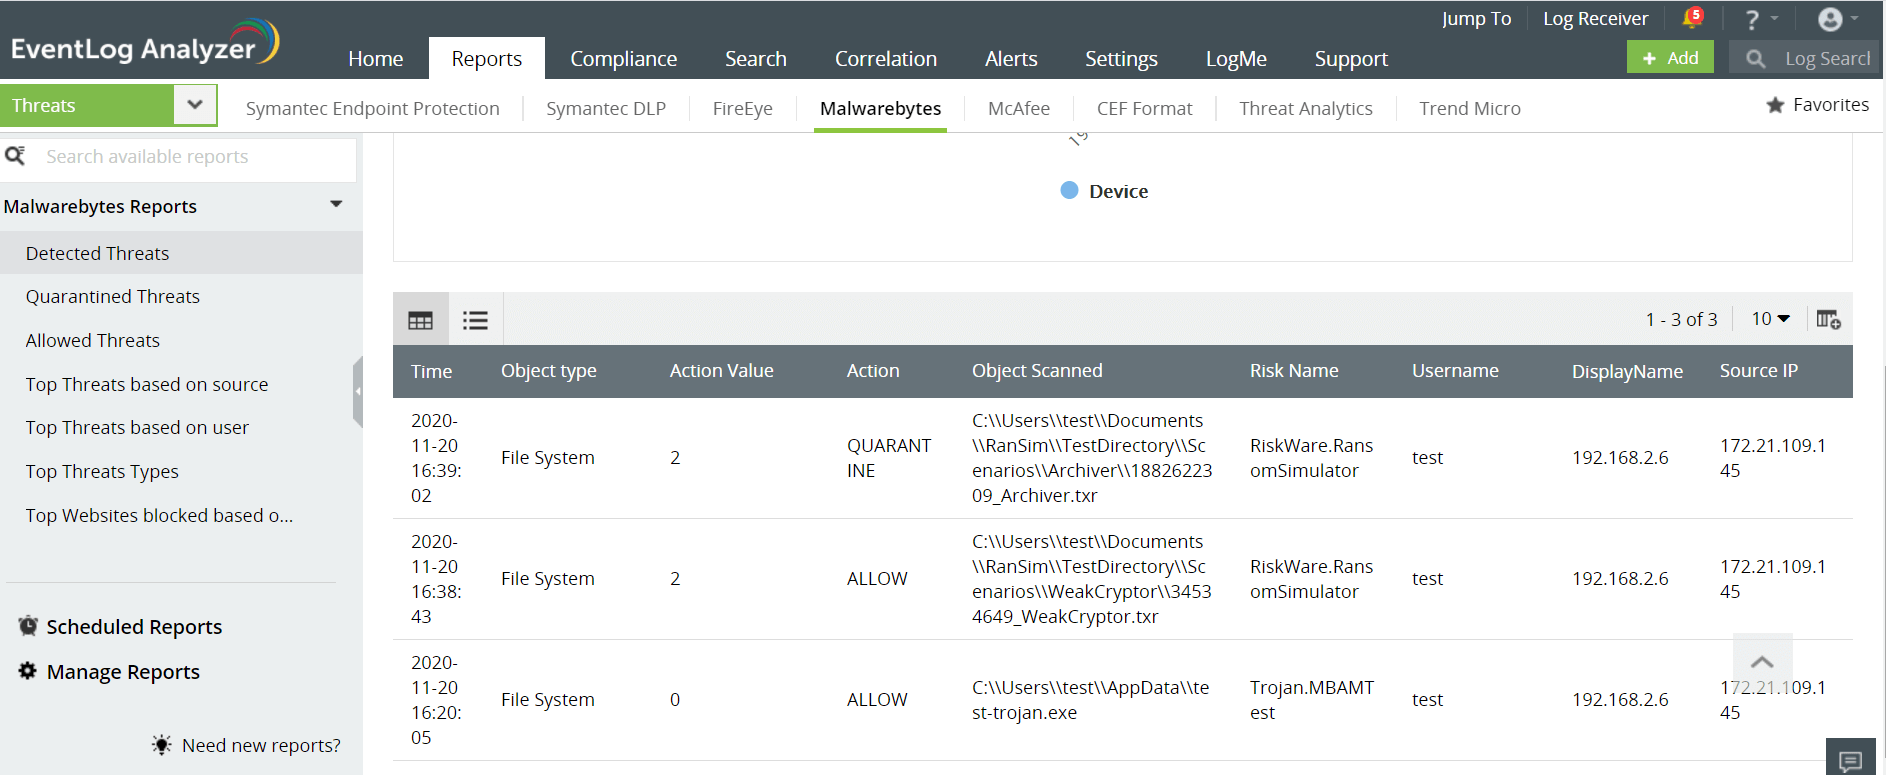 Reports for Malwarebytes devices